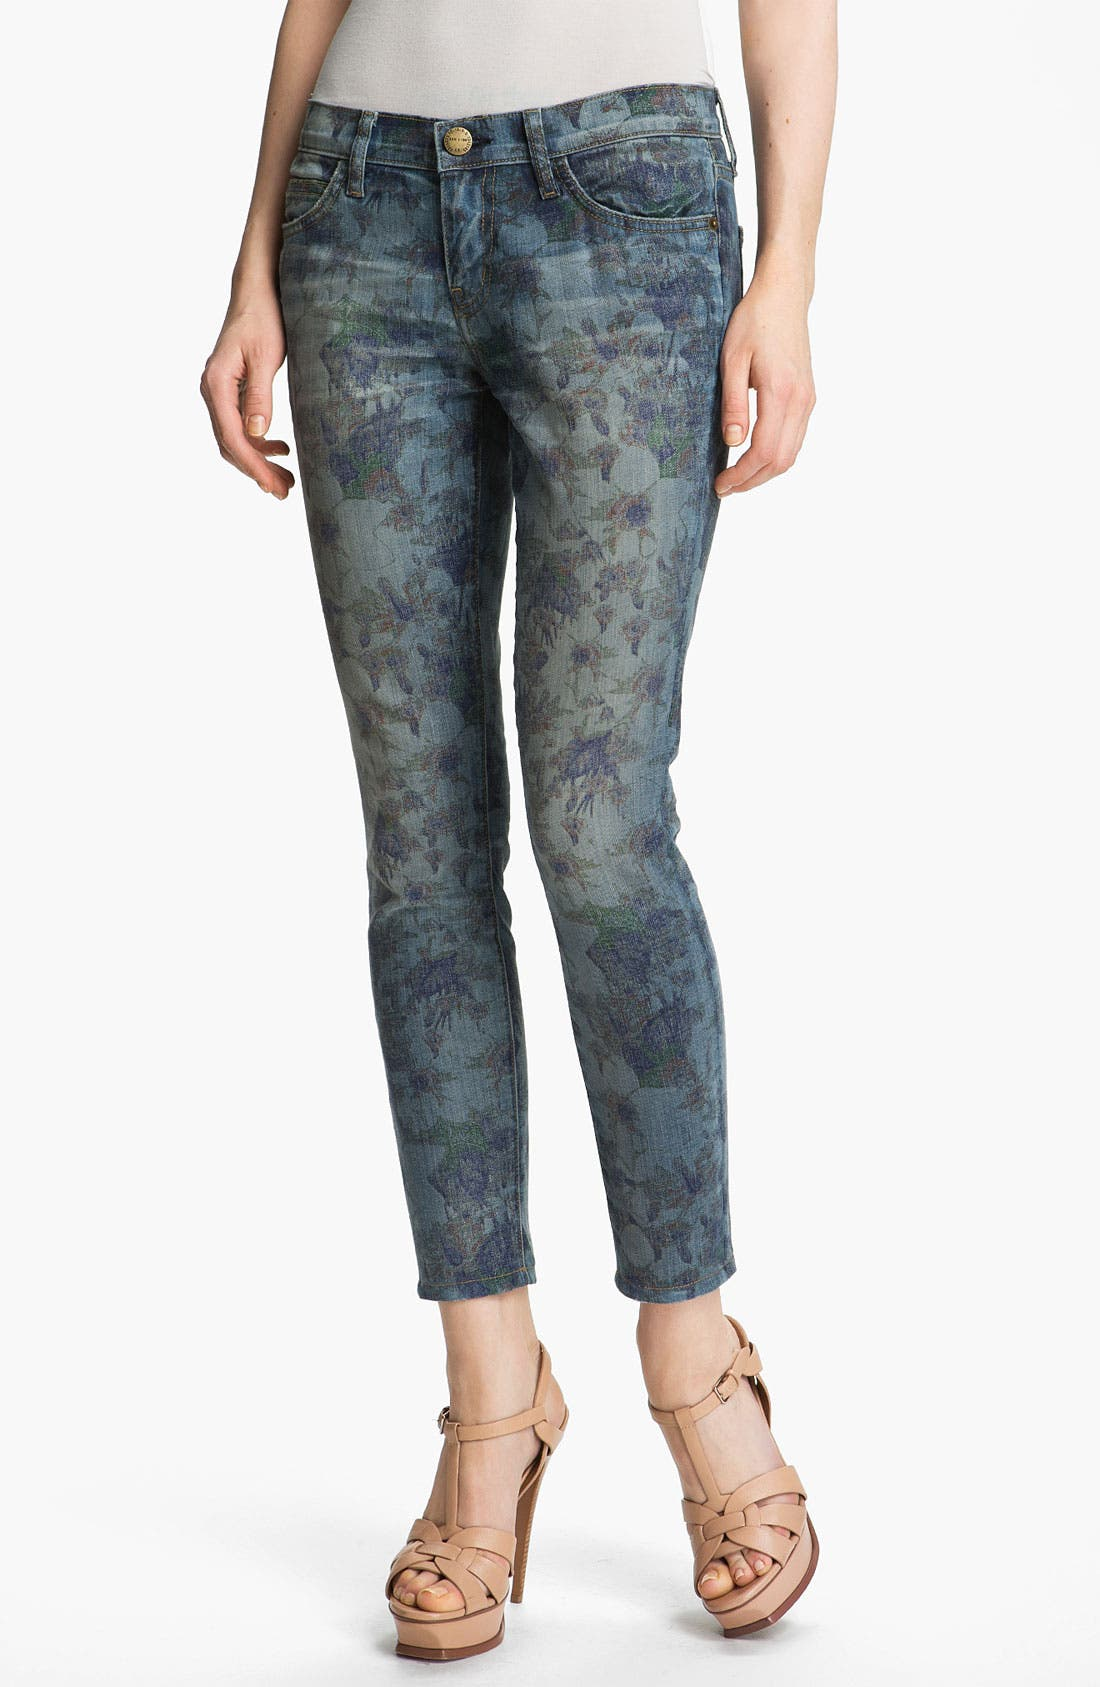 Main Image - Current/Elliott 'The Stiletto' Burnout Floral Print Stretch Jeans